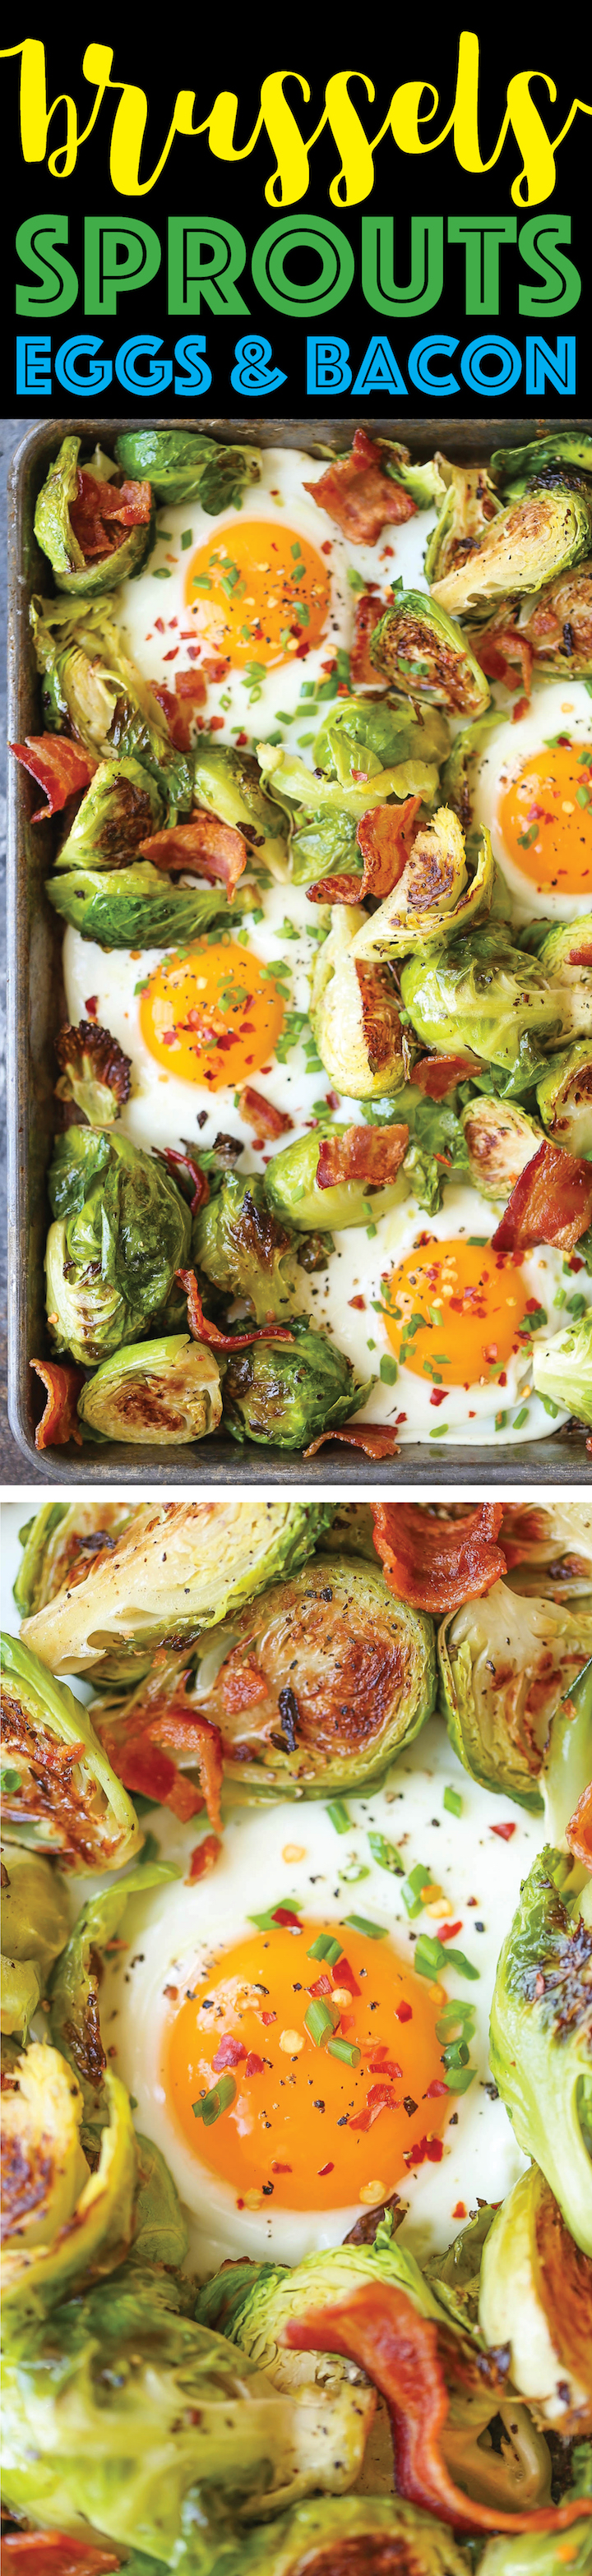 Brussels Sprouts, Eggs and Bacon - A complete sheet pan breakfast with ...